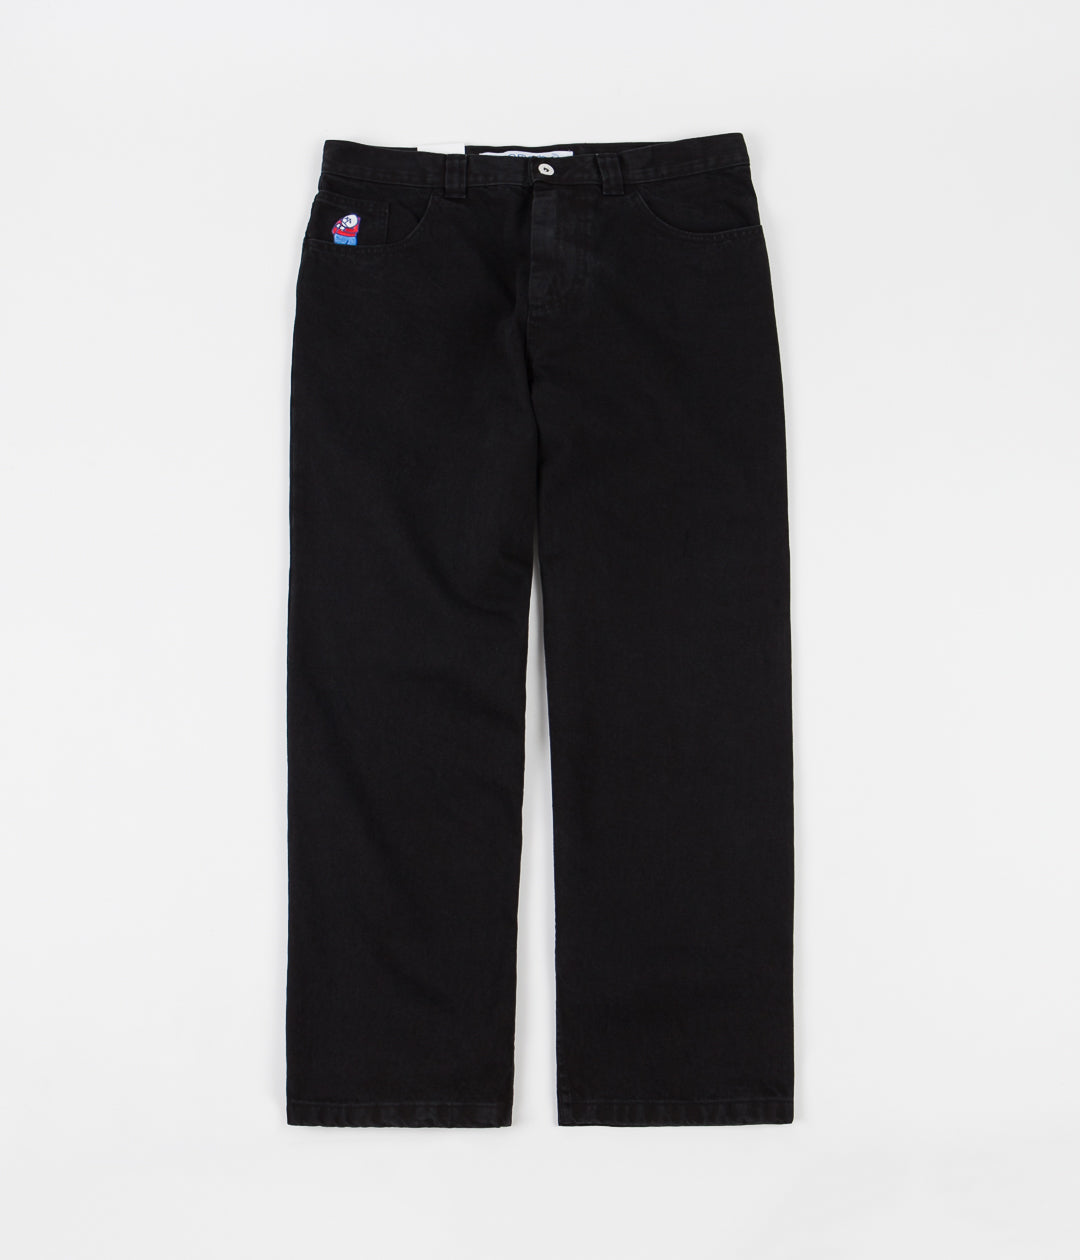 74c4c6e30c Polar Big Boy Jeans - Pitch Black